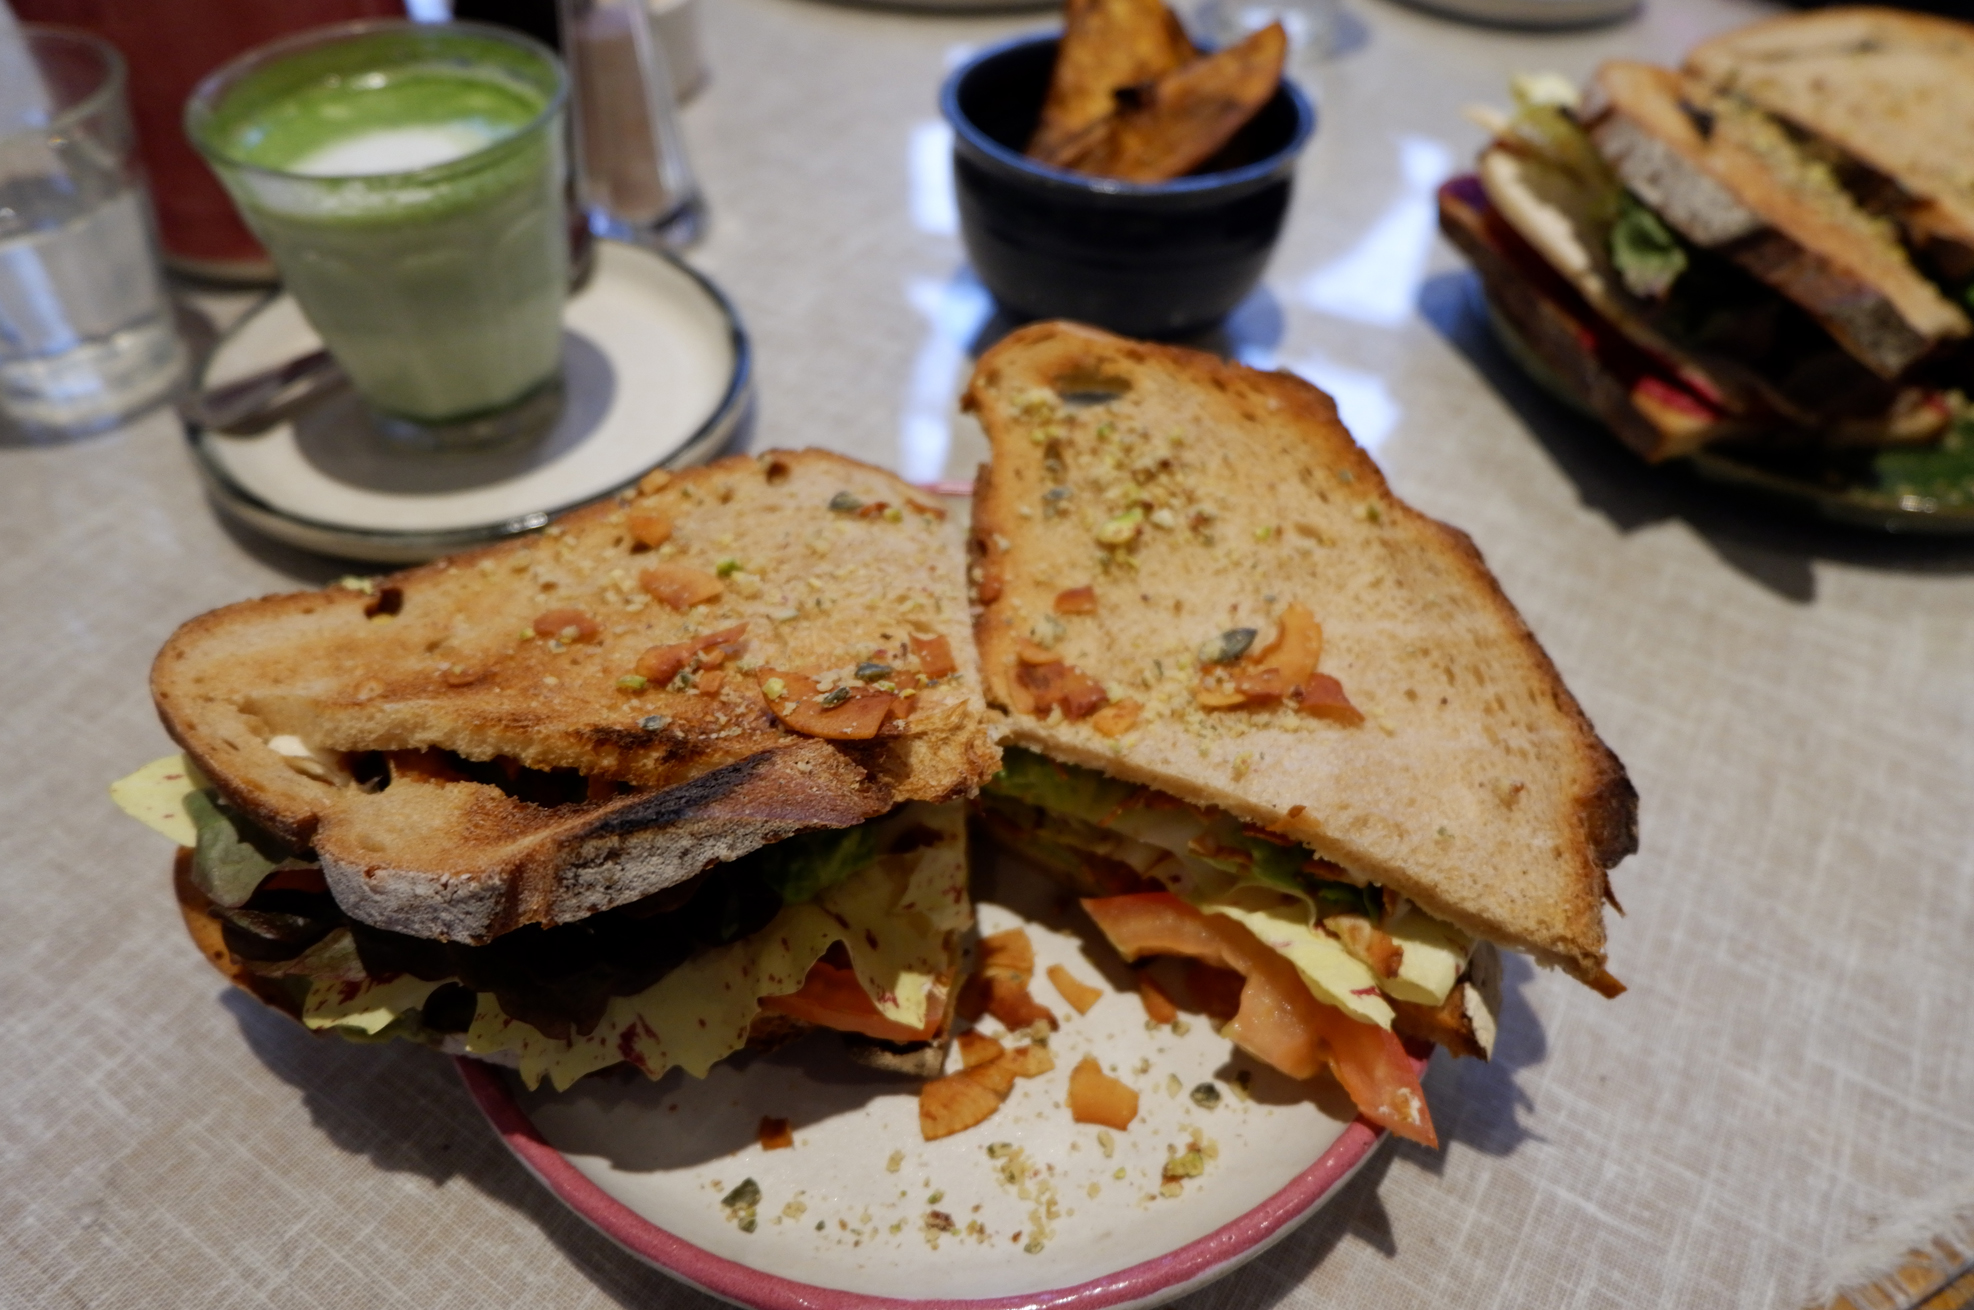 BLT, Brunch, Sandwich